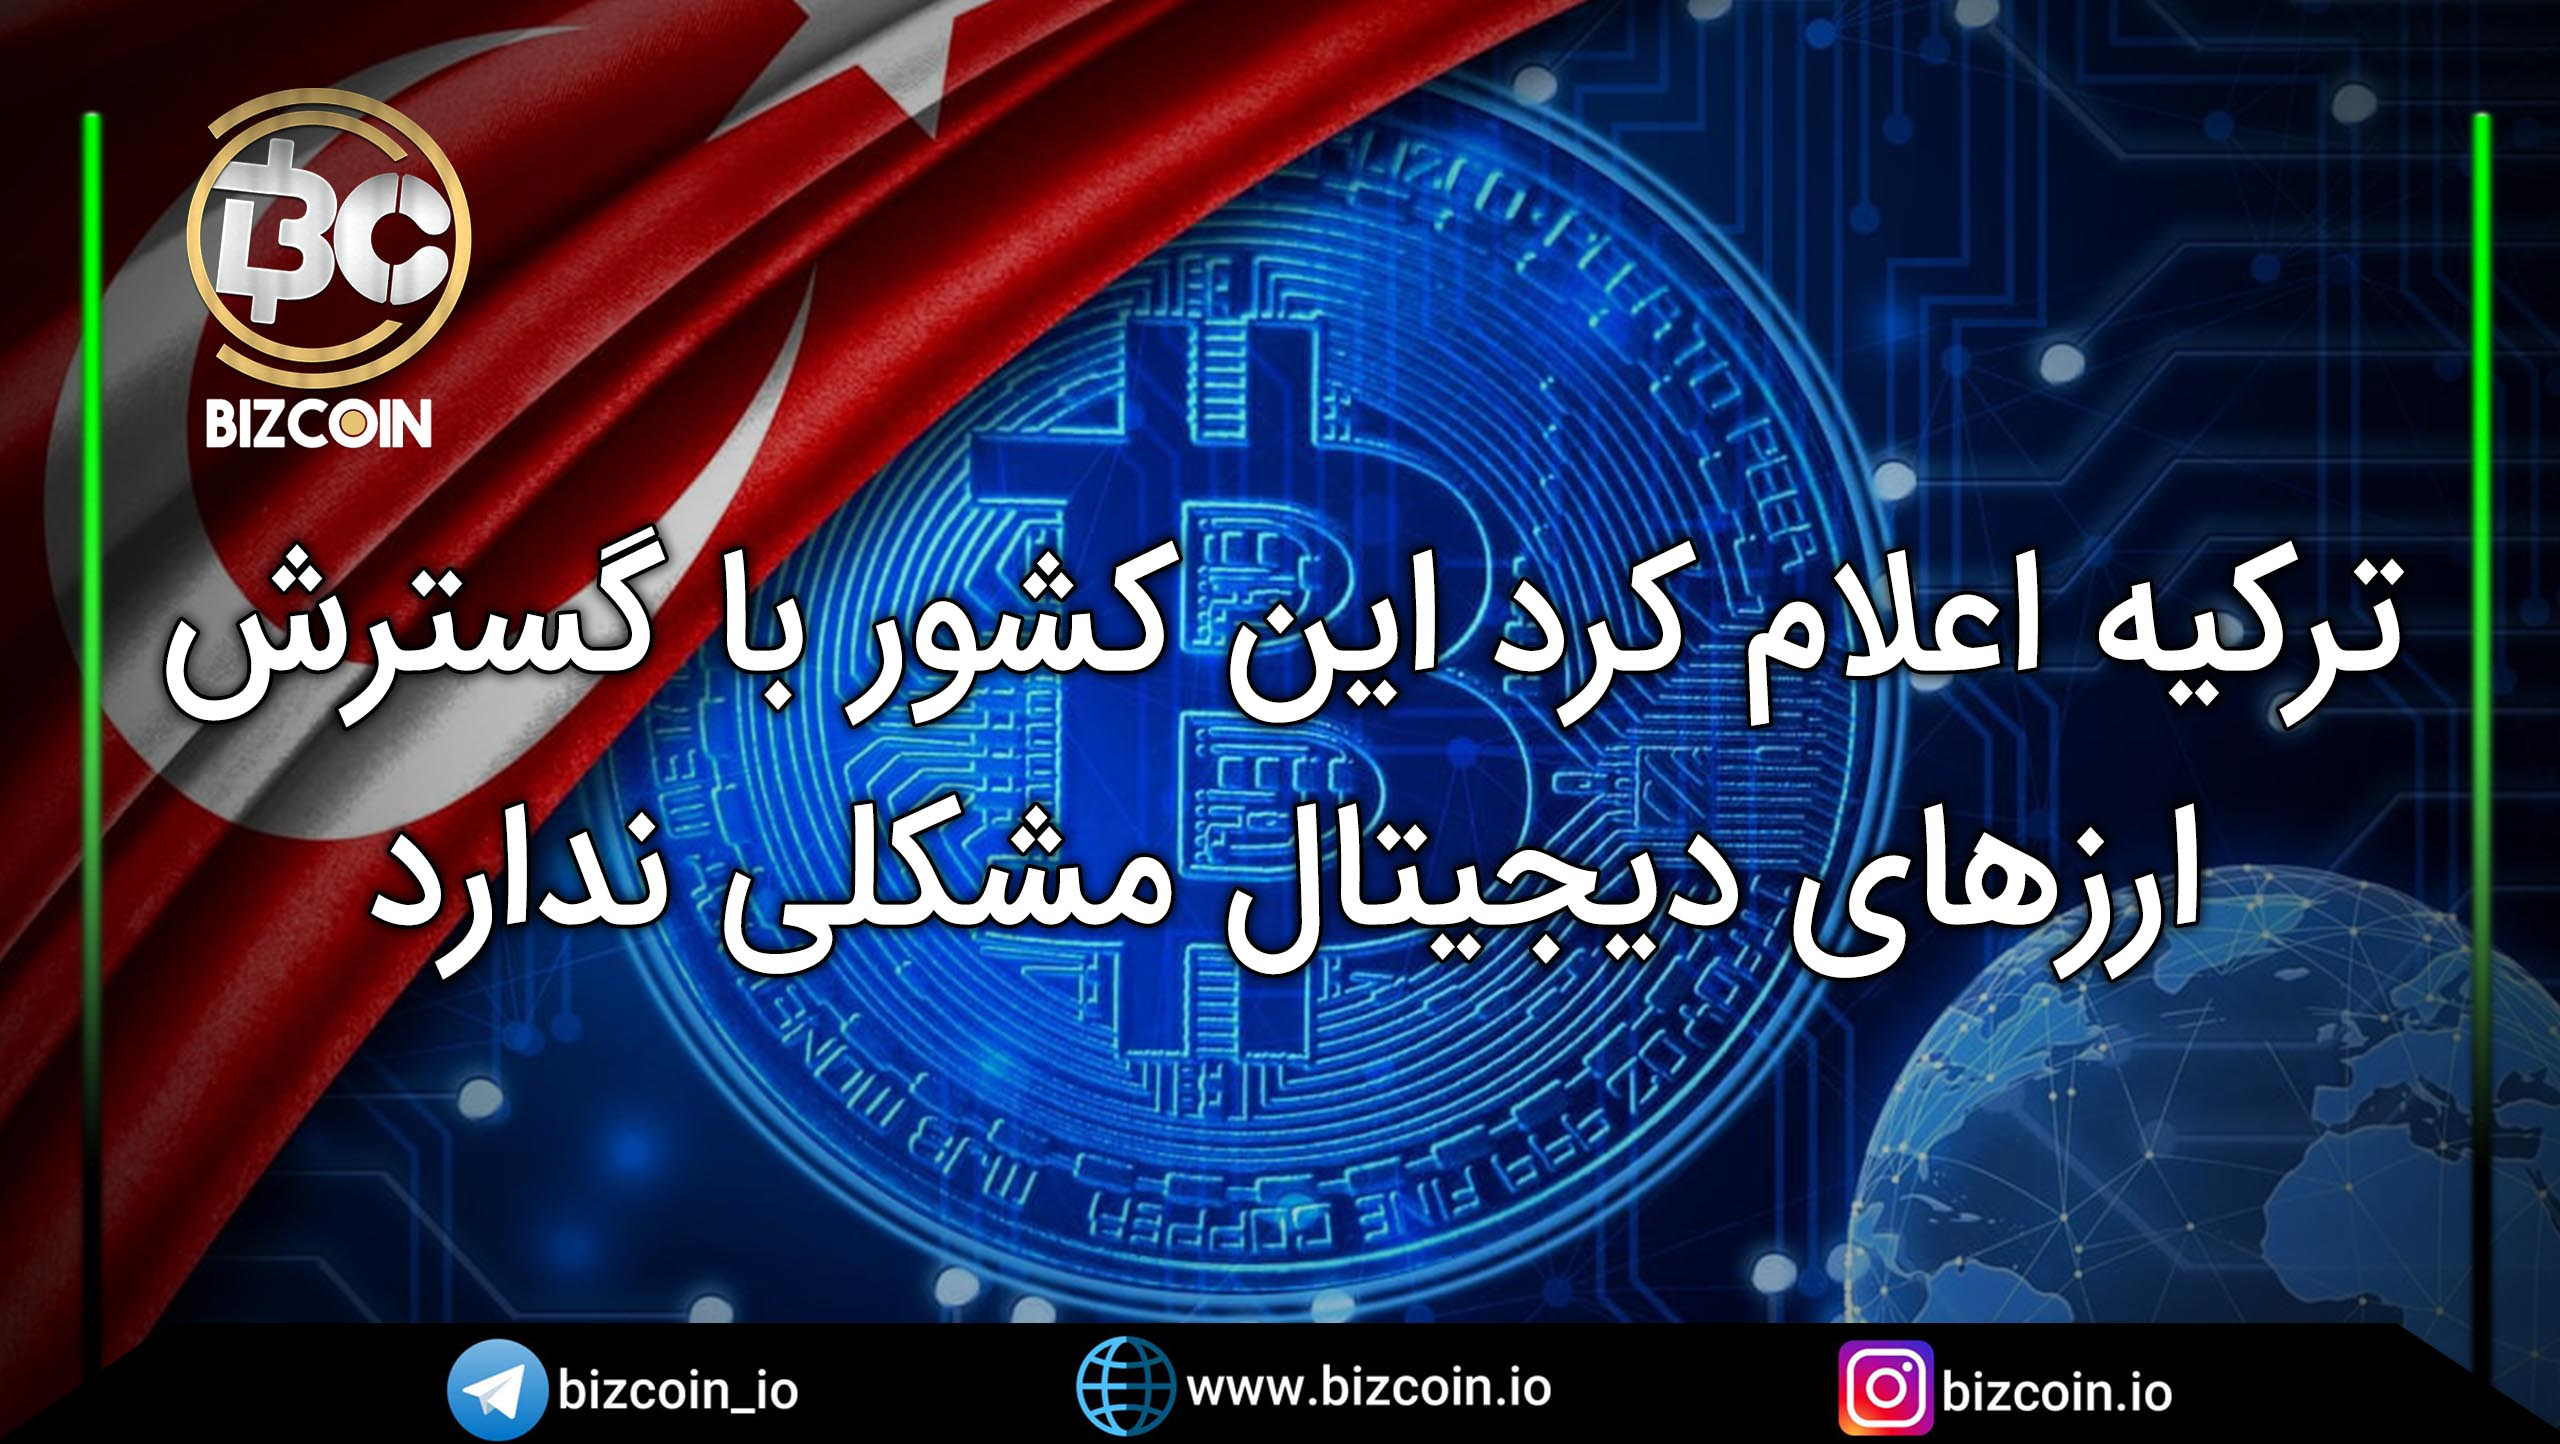 Turkey has stated that it has no problem with the expansion of cryptocurrencies ترکیه اعلام کرد این کشور با گسترش ارزهای دیجیتال مشکلی ندارد